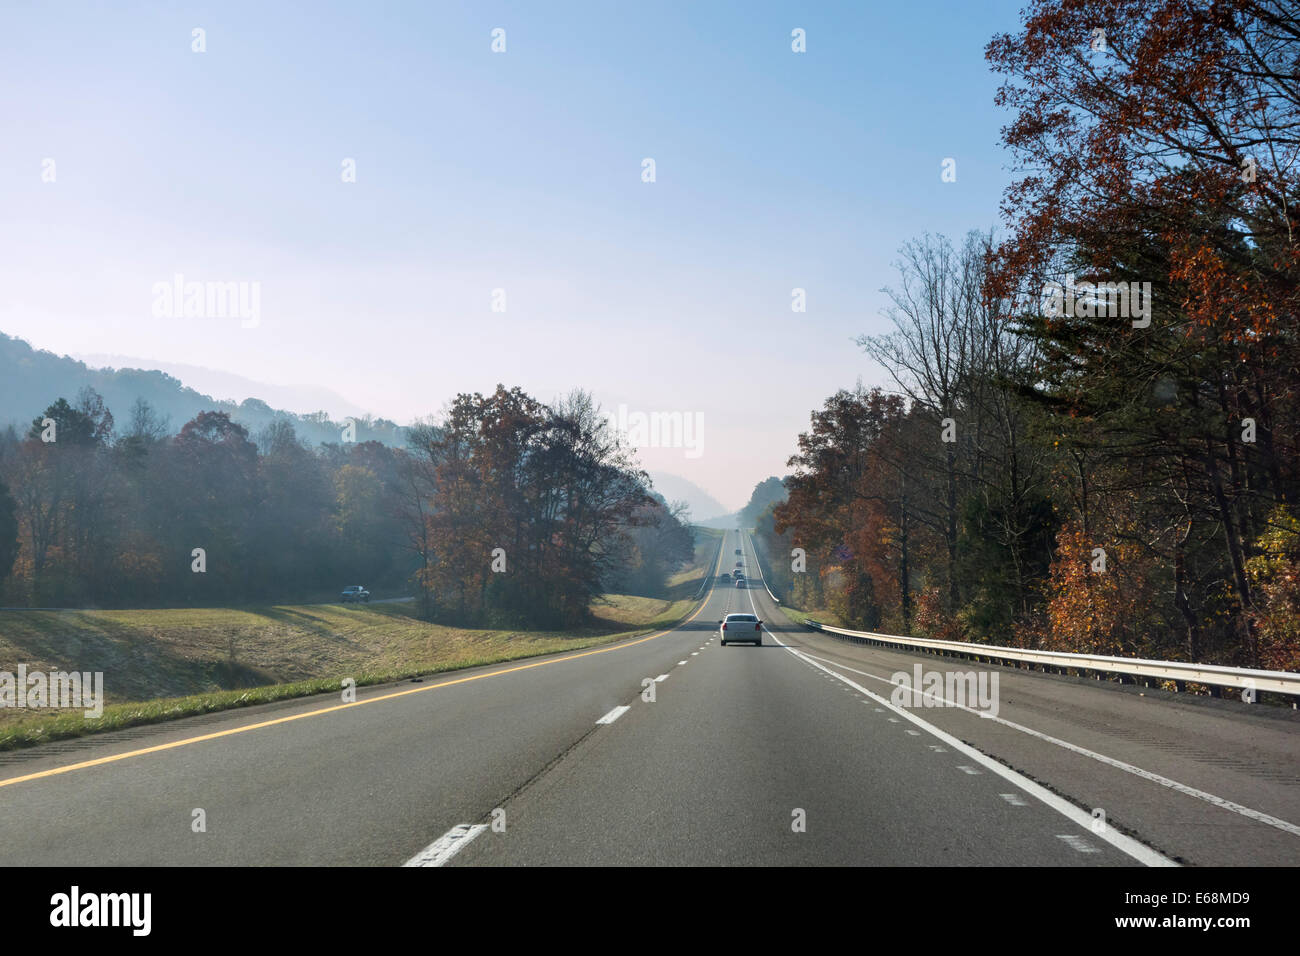 Interstate 40 in Tennessee just north of Great Smoky Mountains National Park, USA - Stock Image